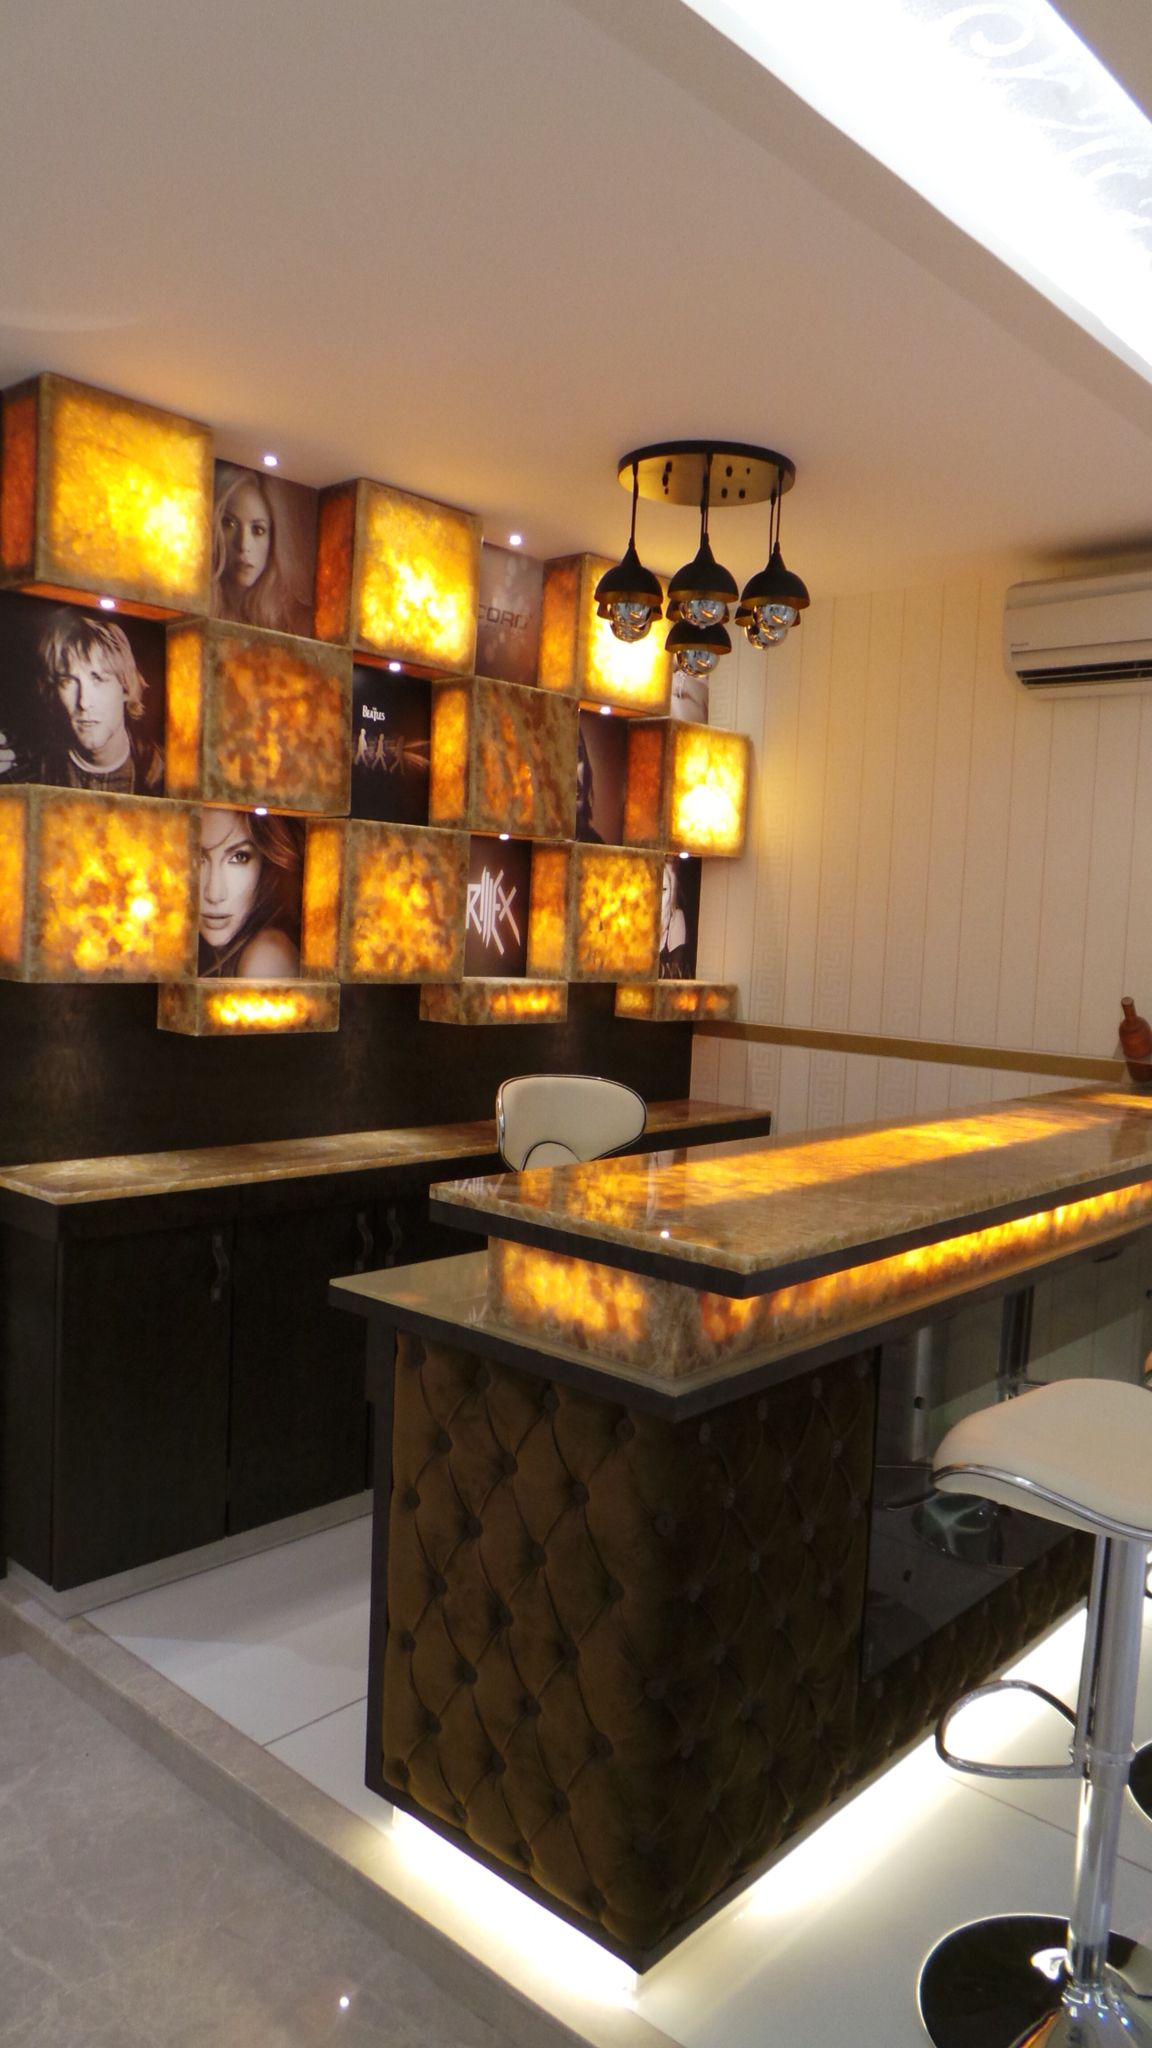 Onyx Marble Bar Counter Designed By SONIVIPULDESIGNS.